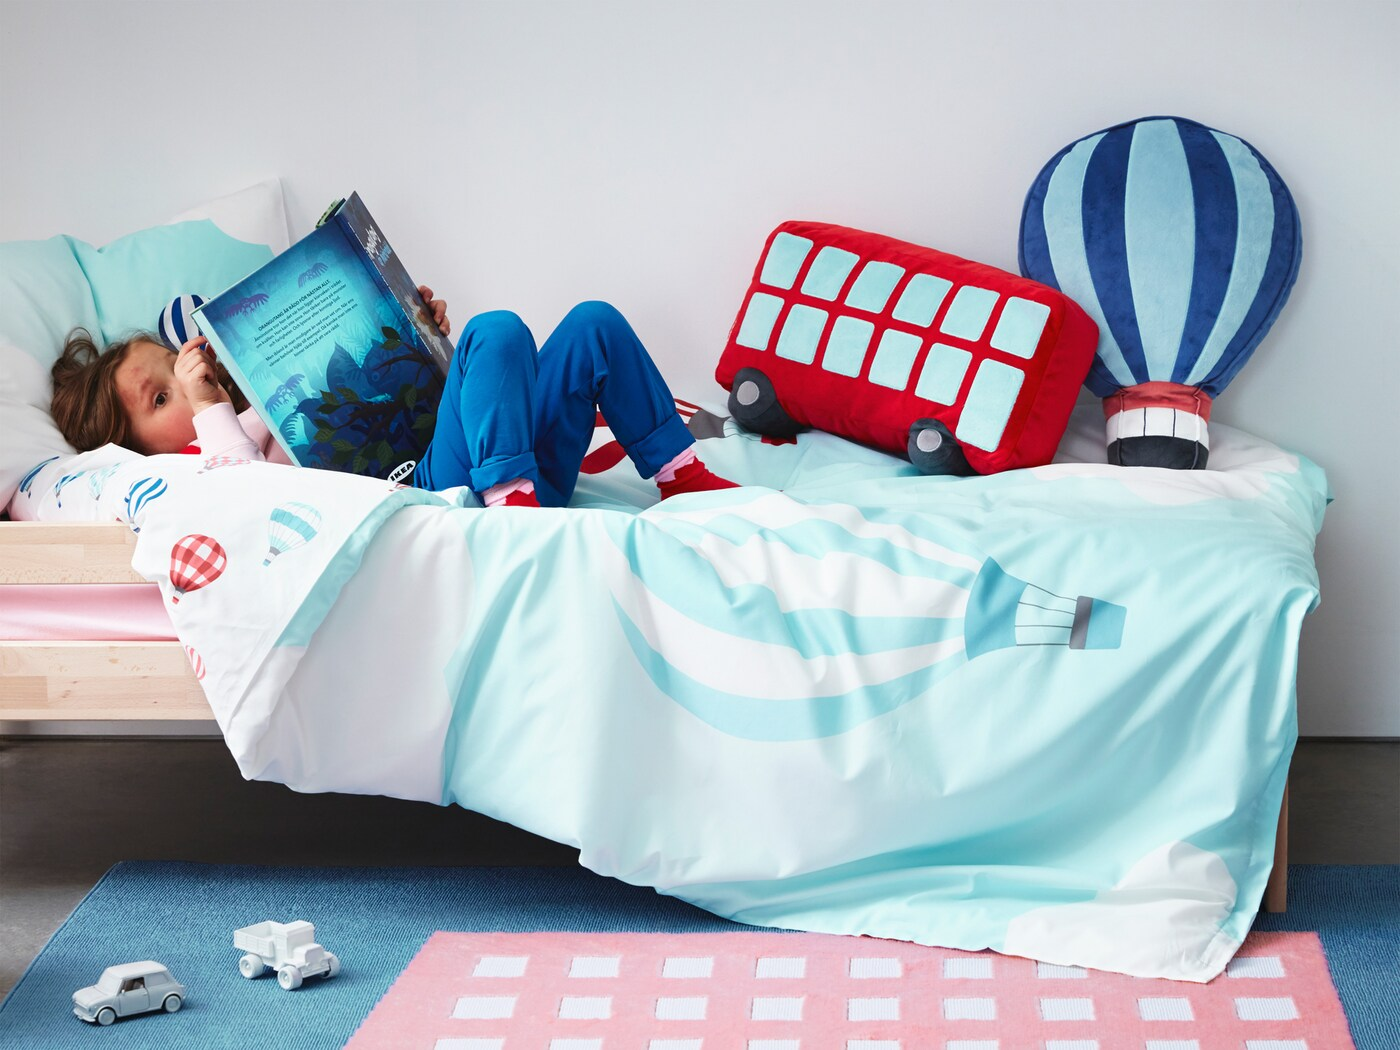 A quilt cover, rug and cushions from UPPTÅG children's textile collection with colourful graphics based on travelling.